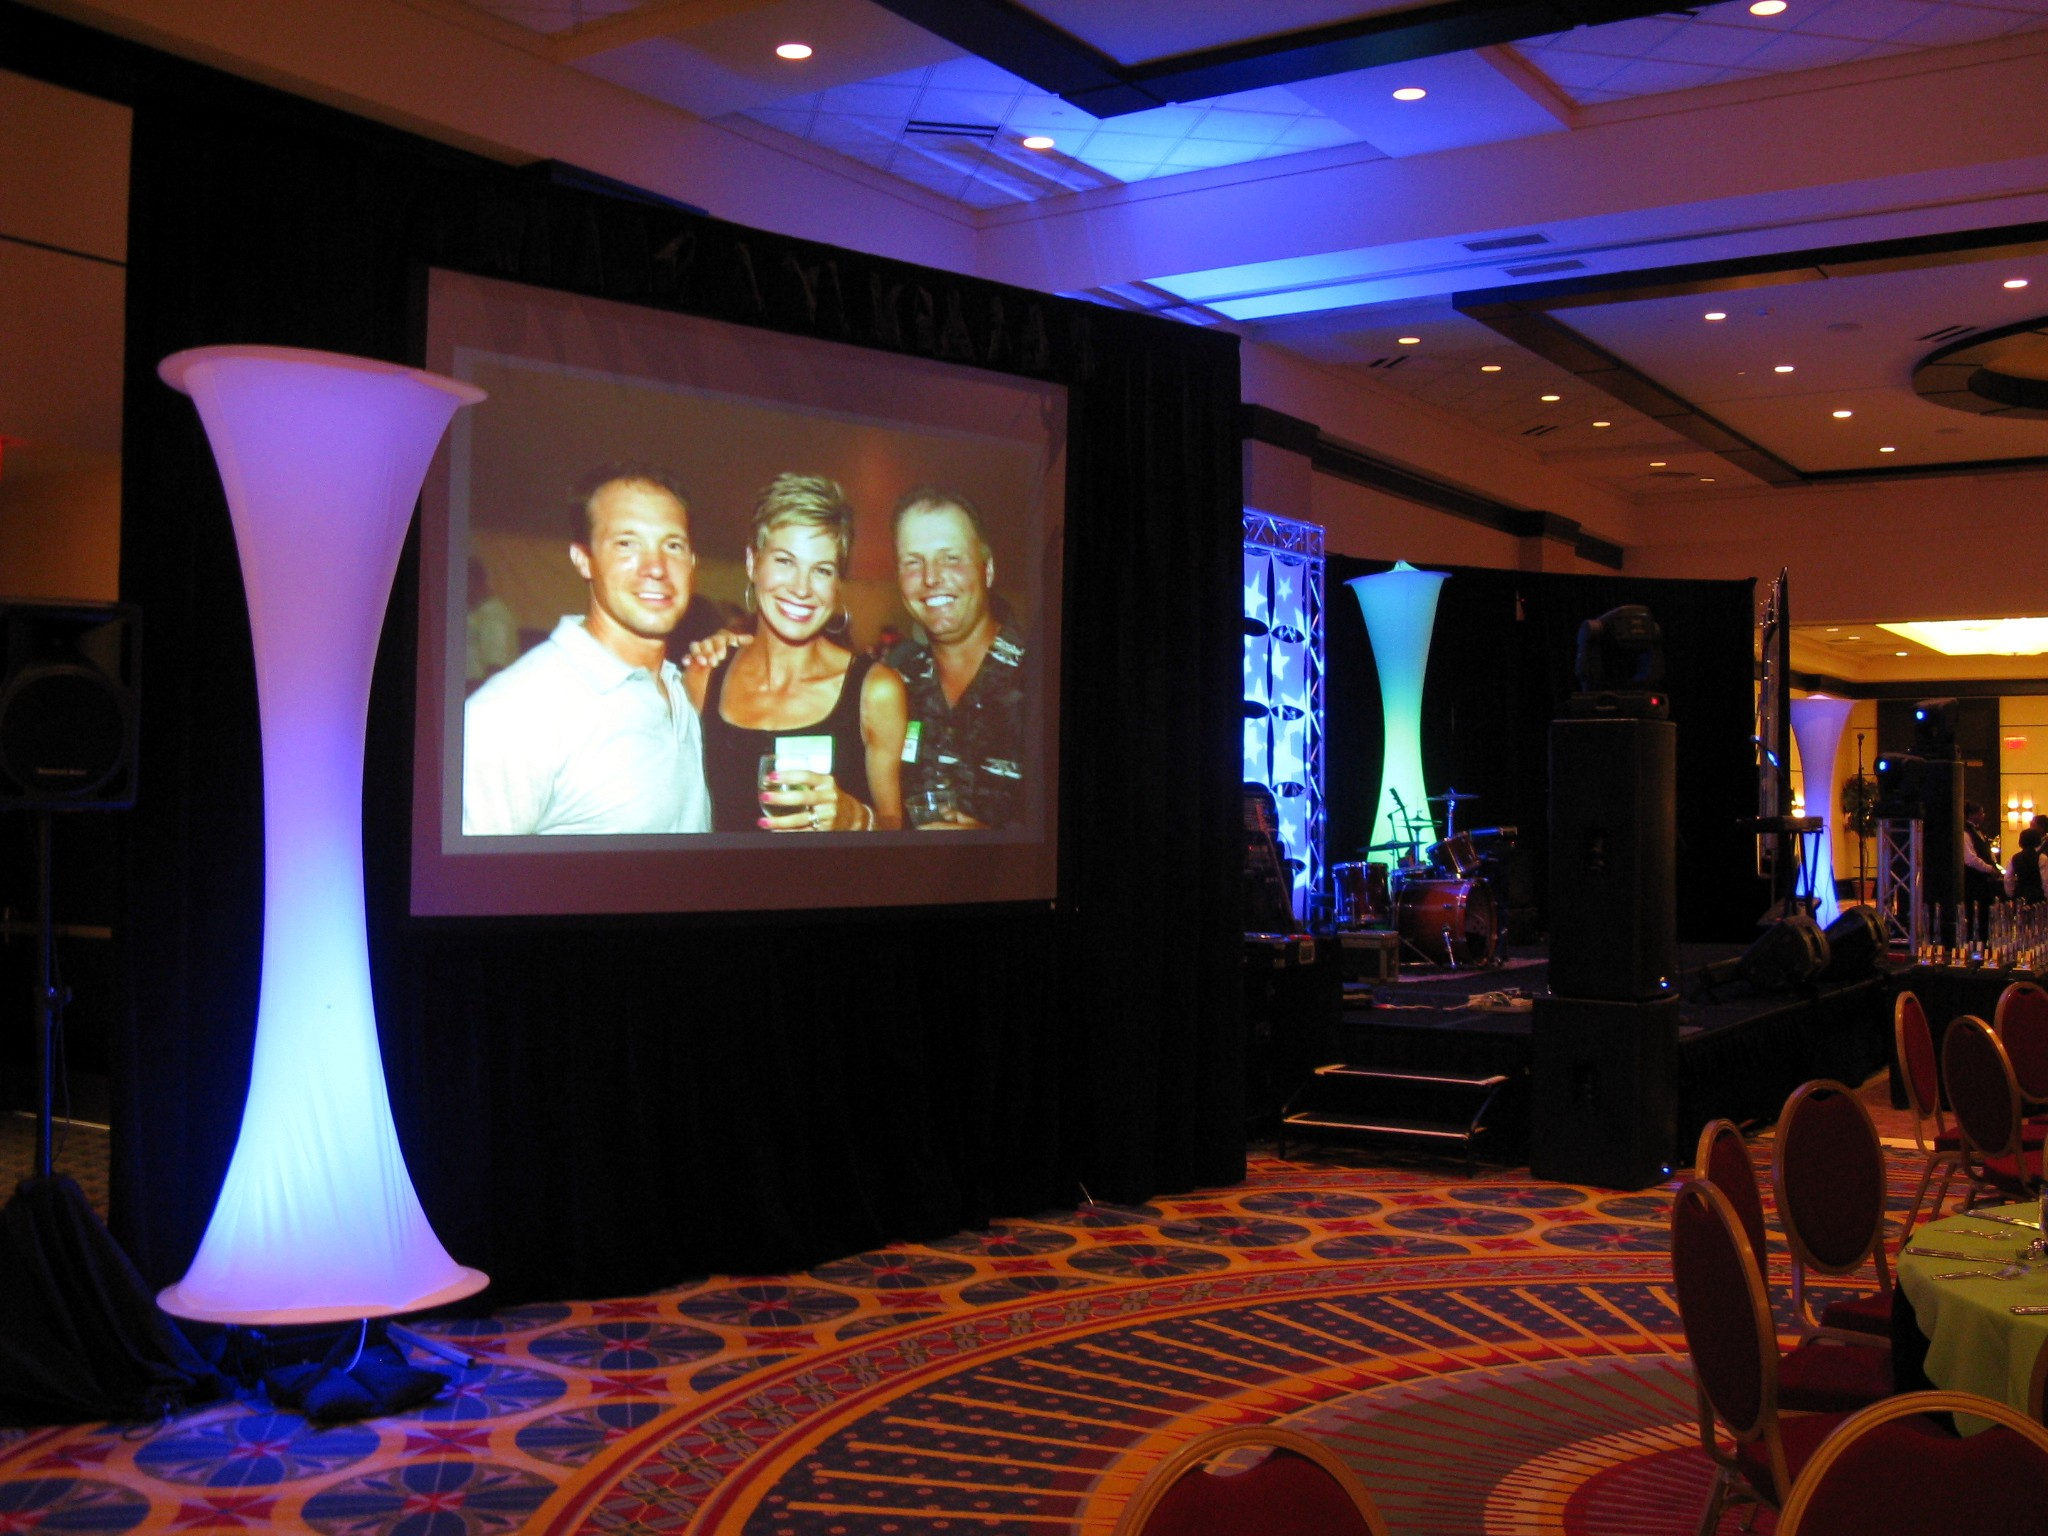 wedding video projection